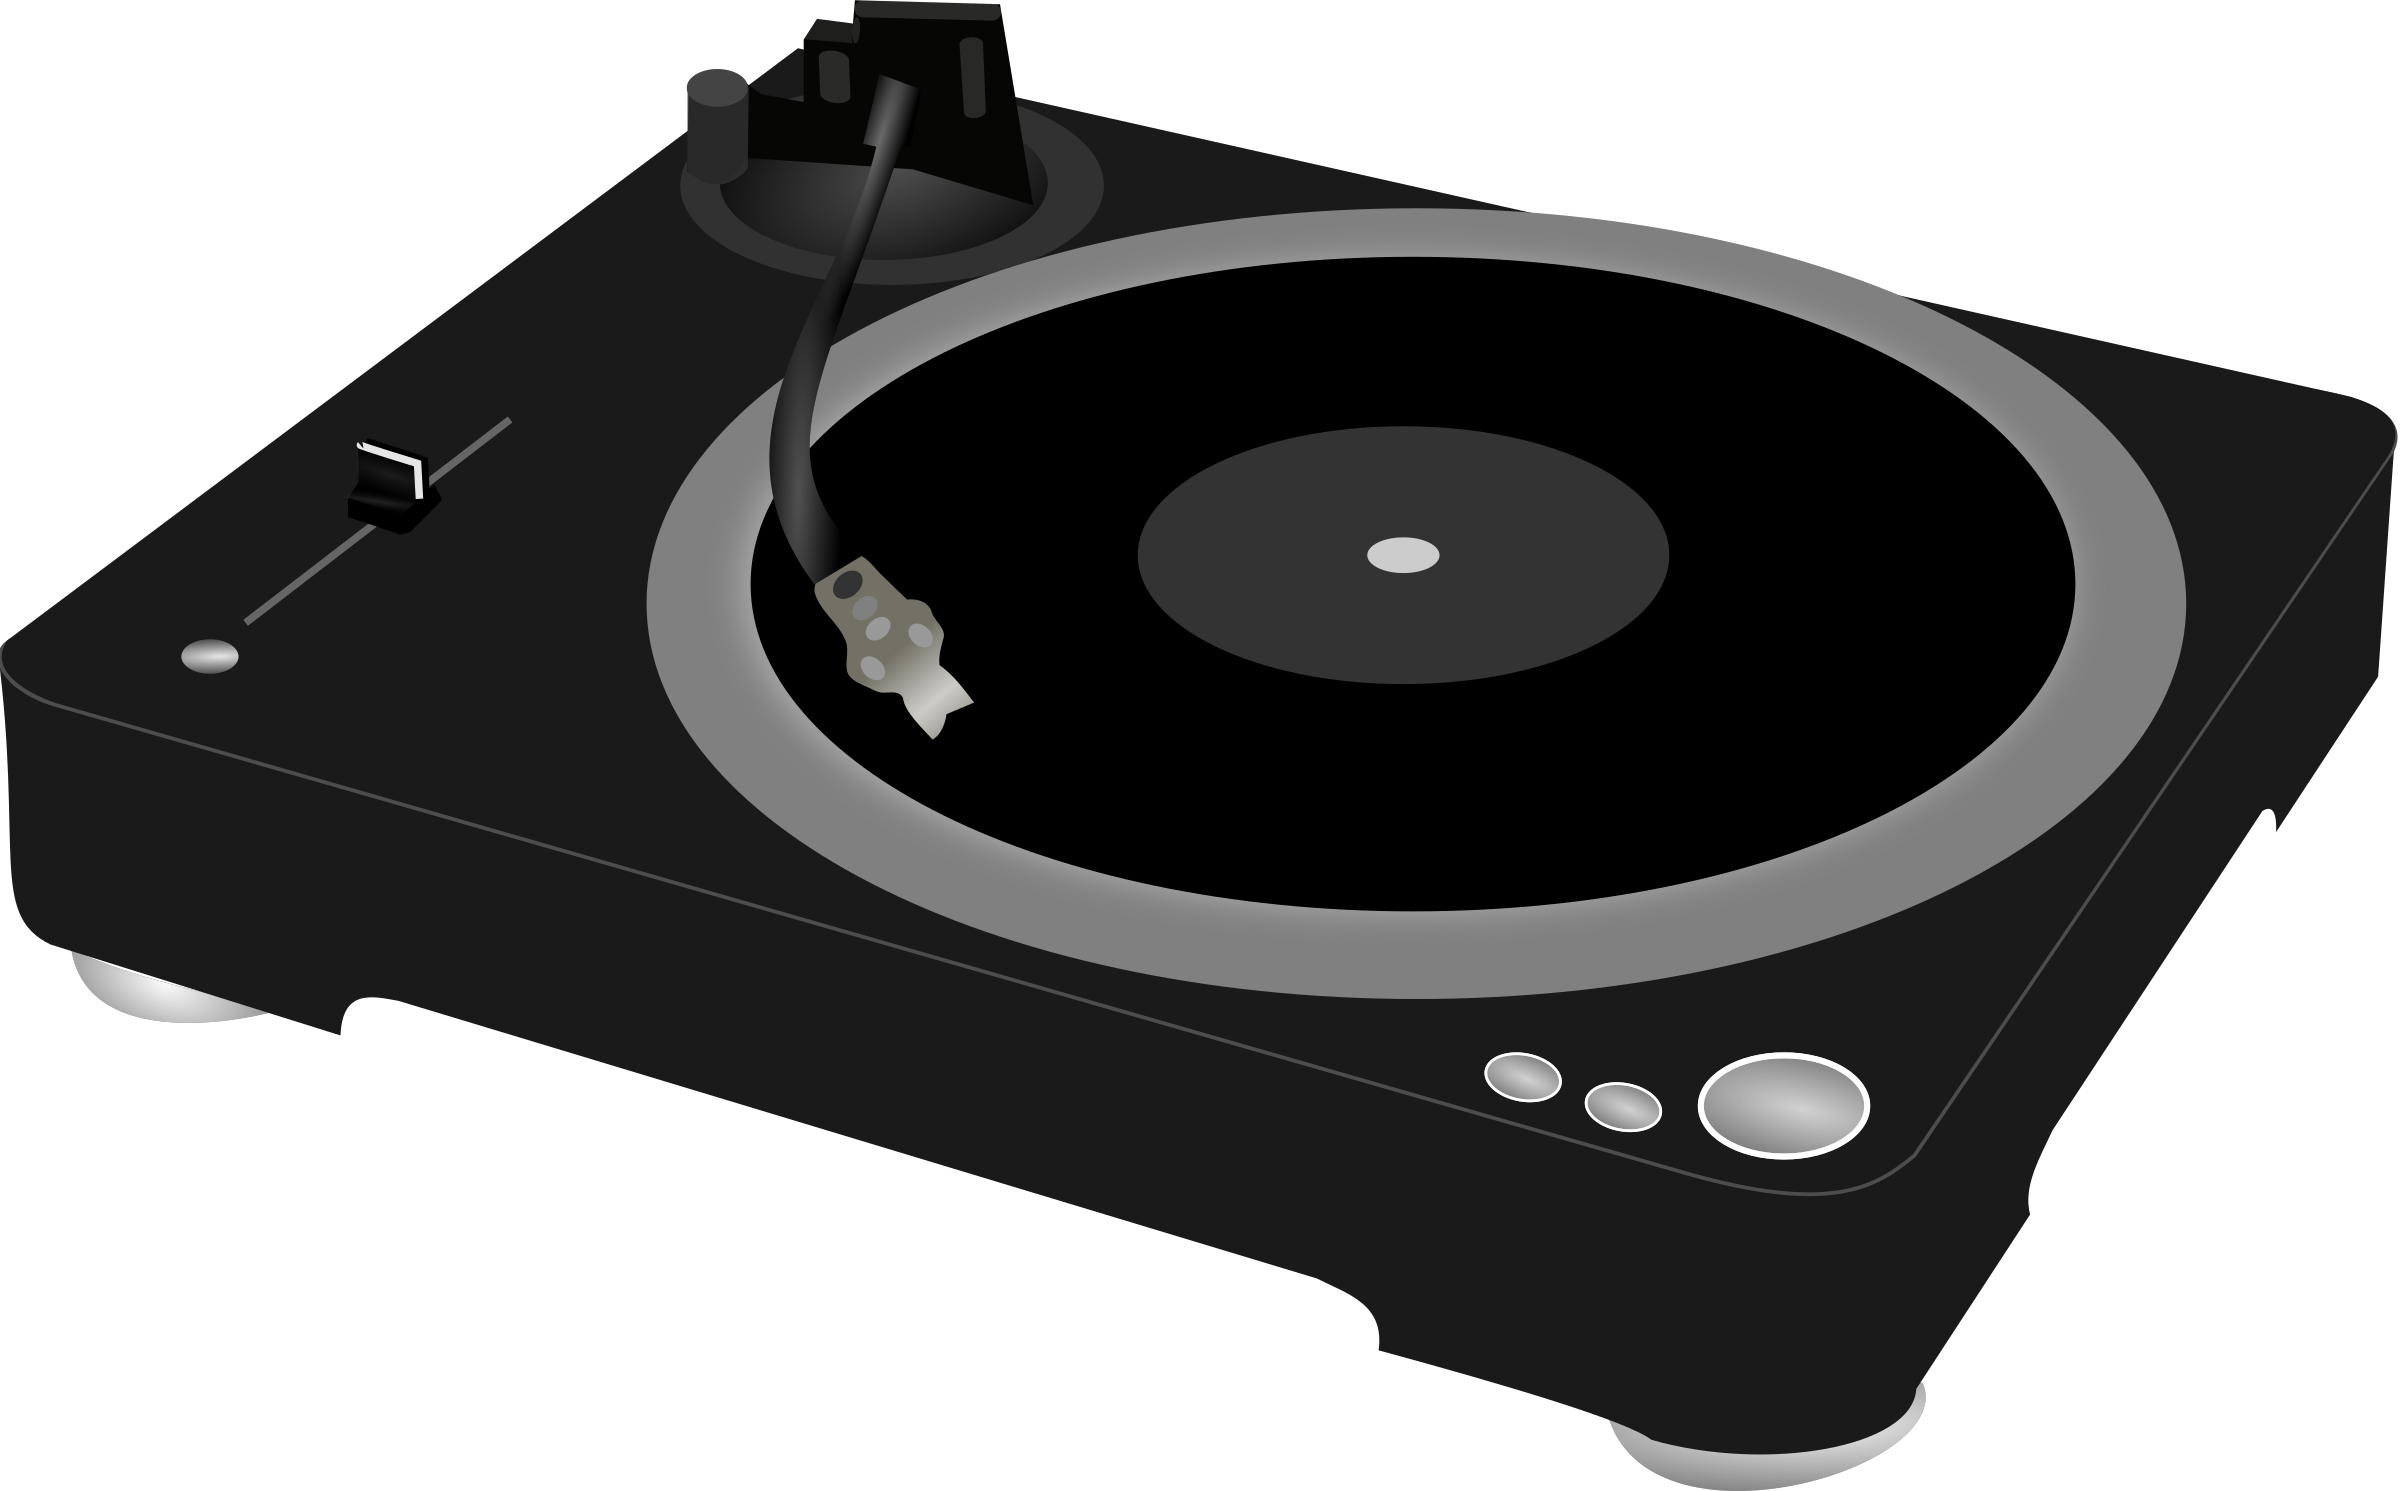 DJ turntable by wakro